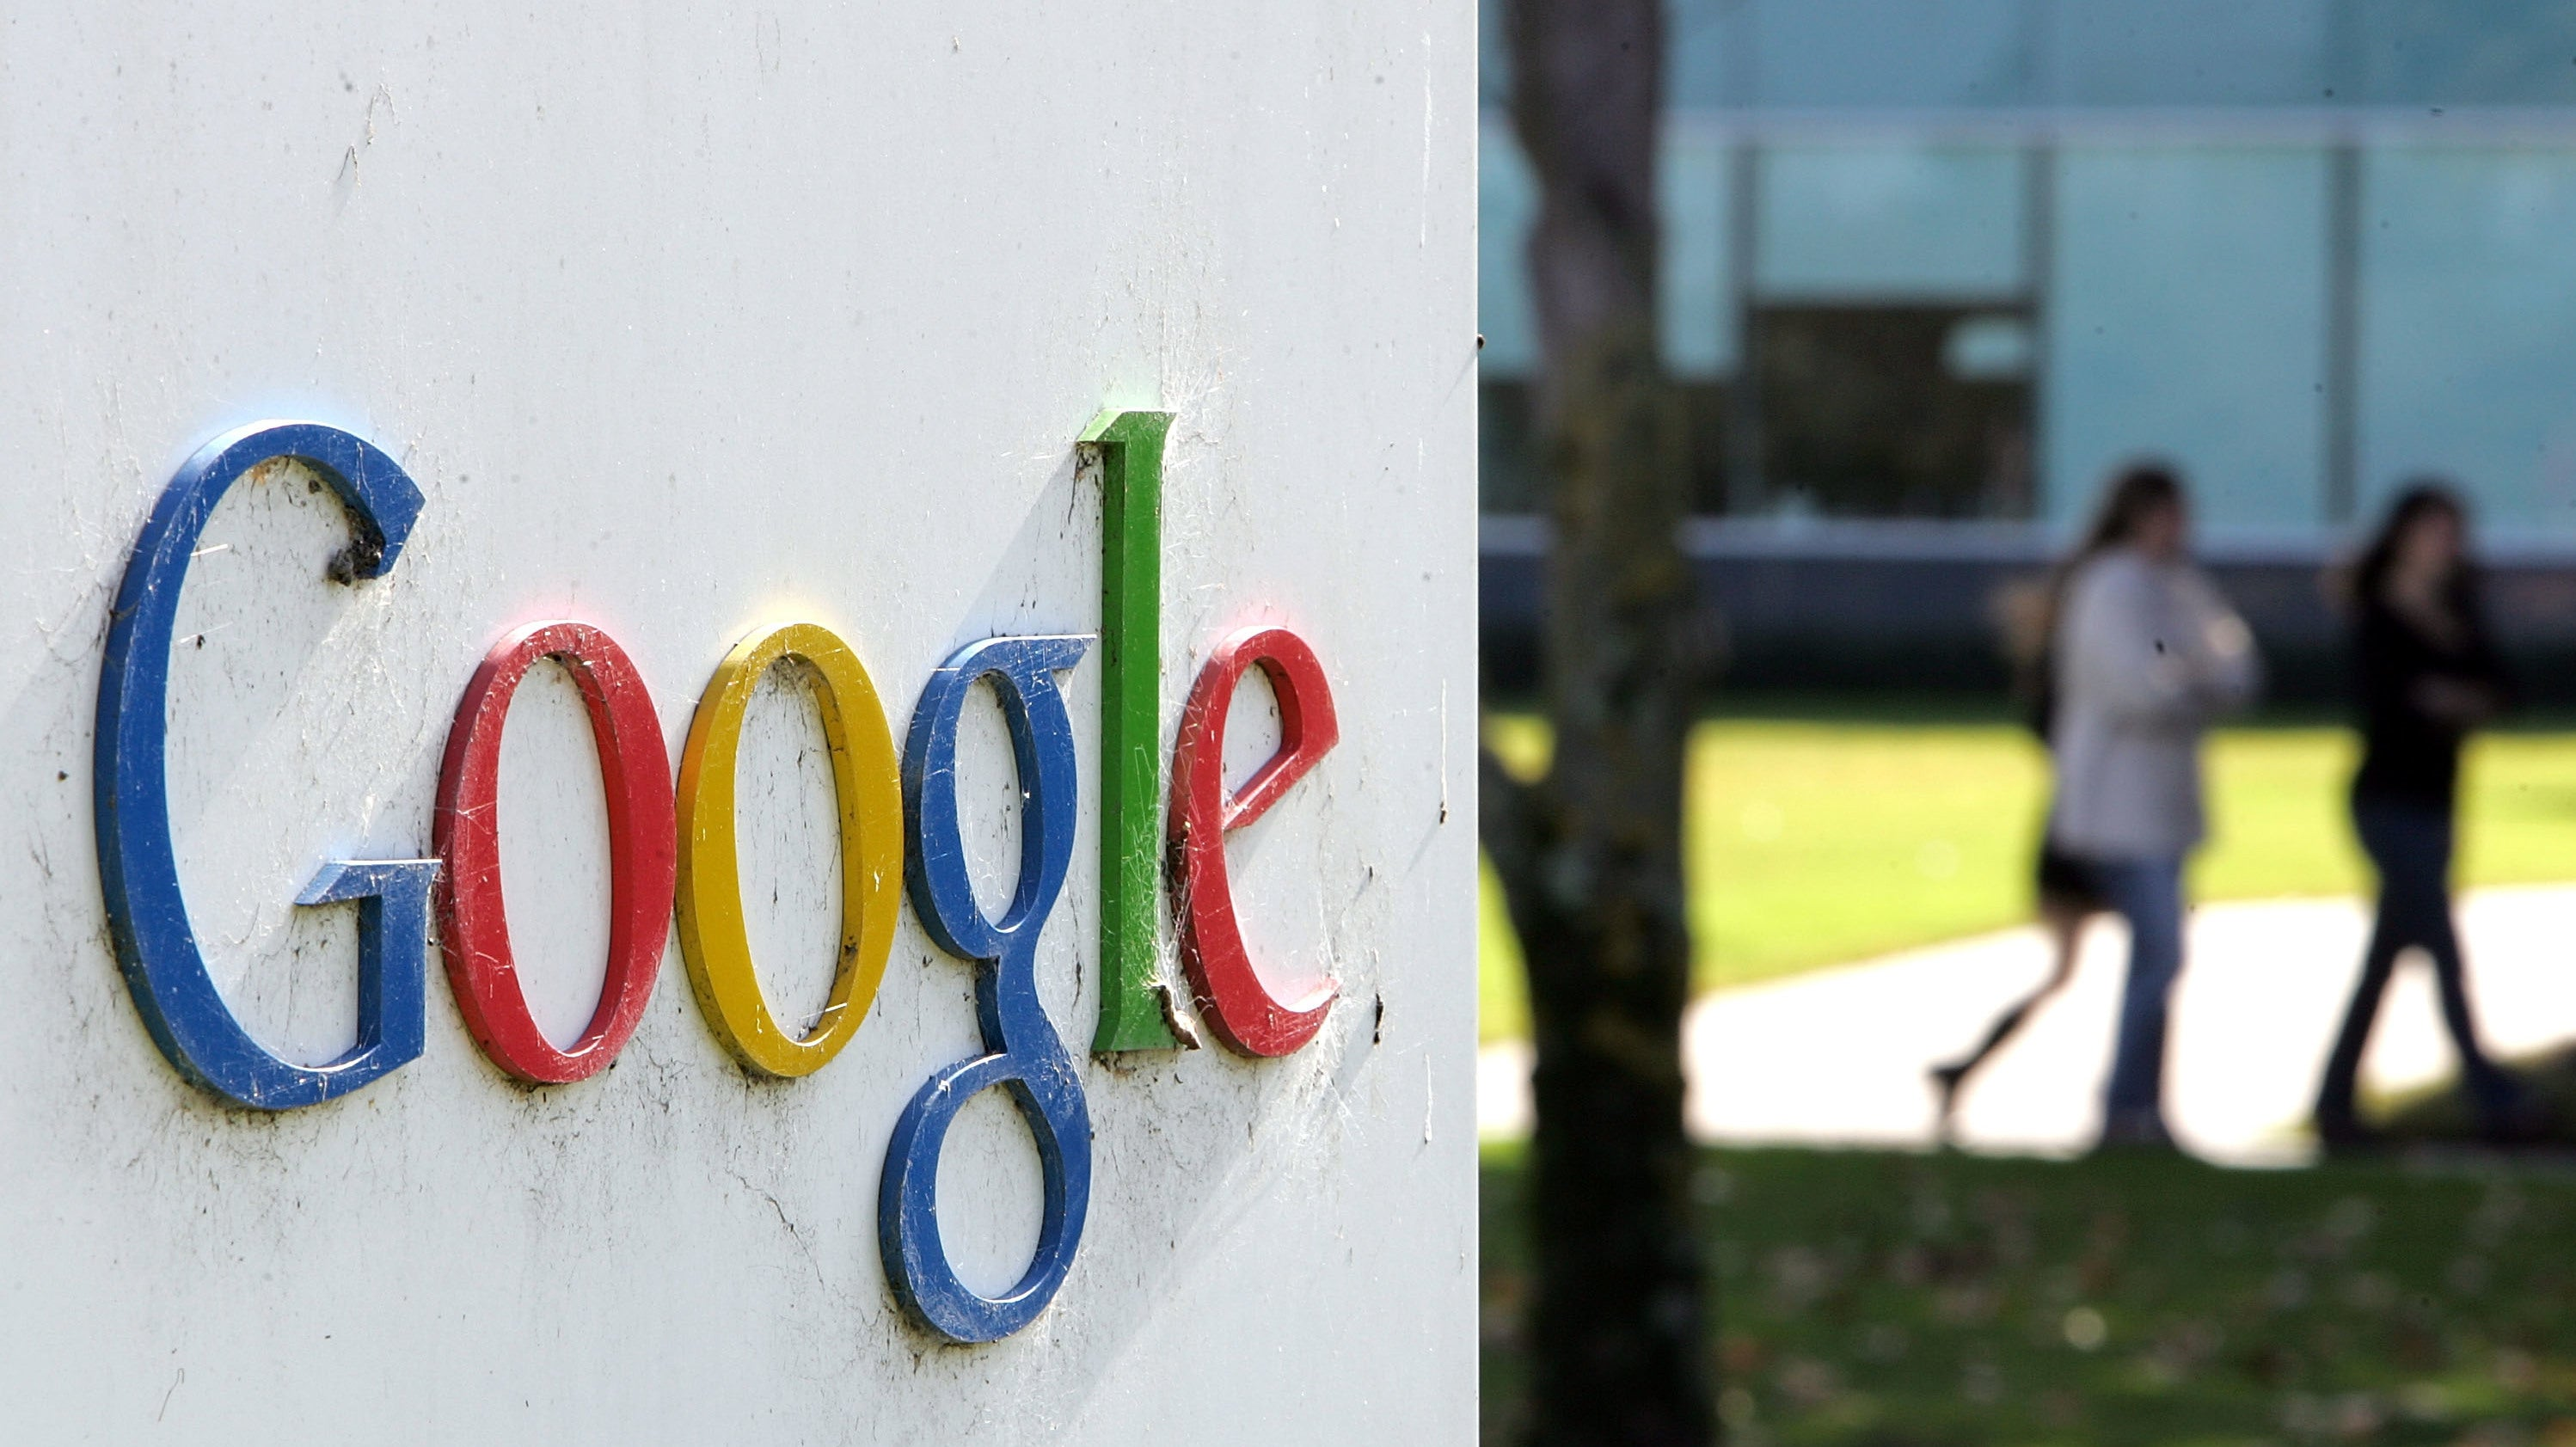 Google Could Face Up To $14 Billion Fine From EU For Android Antitrust Violations